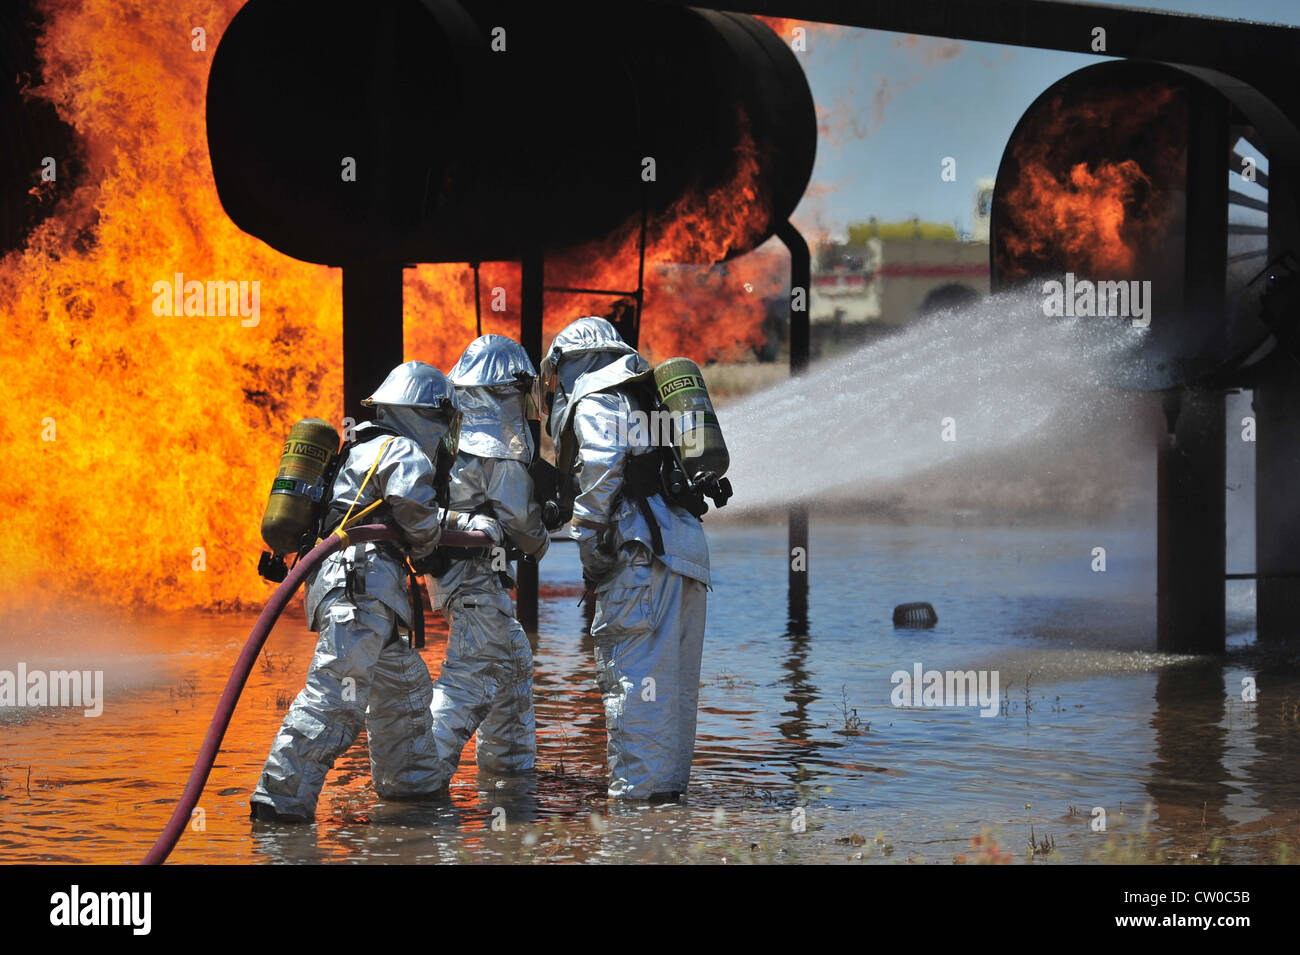 Firefighters with the 27th Special Operations Civil Engineer Squadron work to extinguish an engine fire in the burn - Stock Image